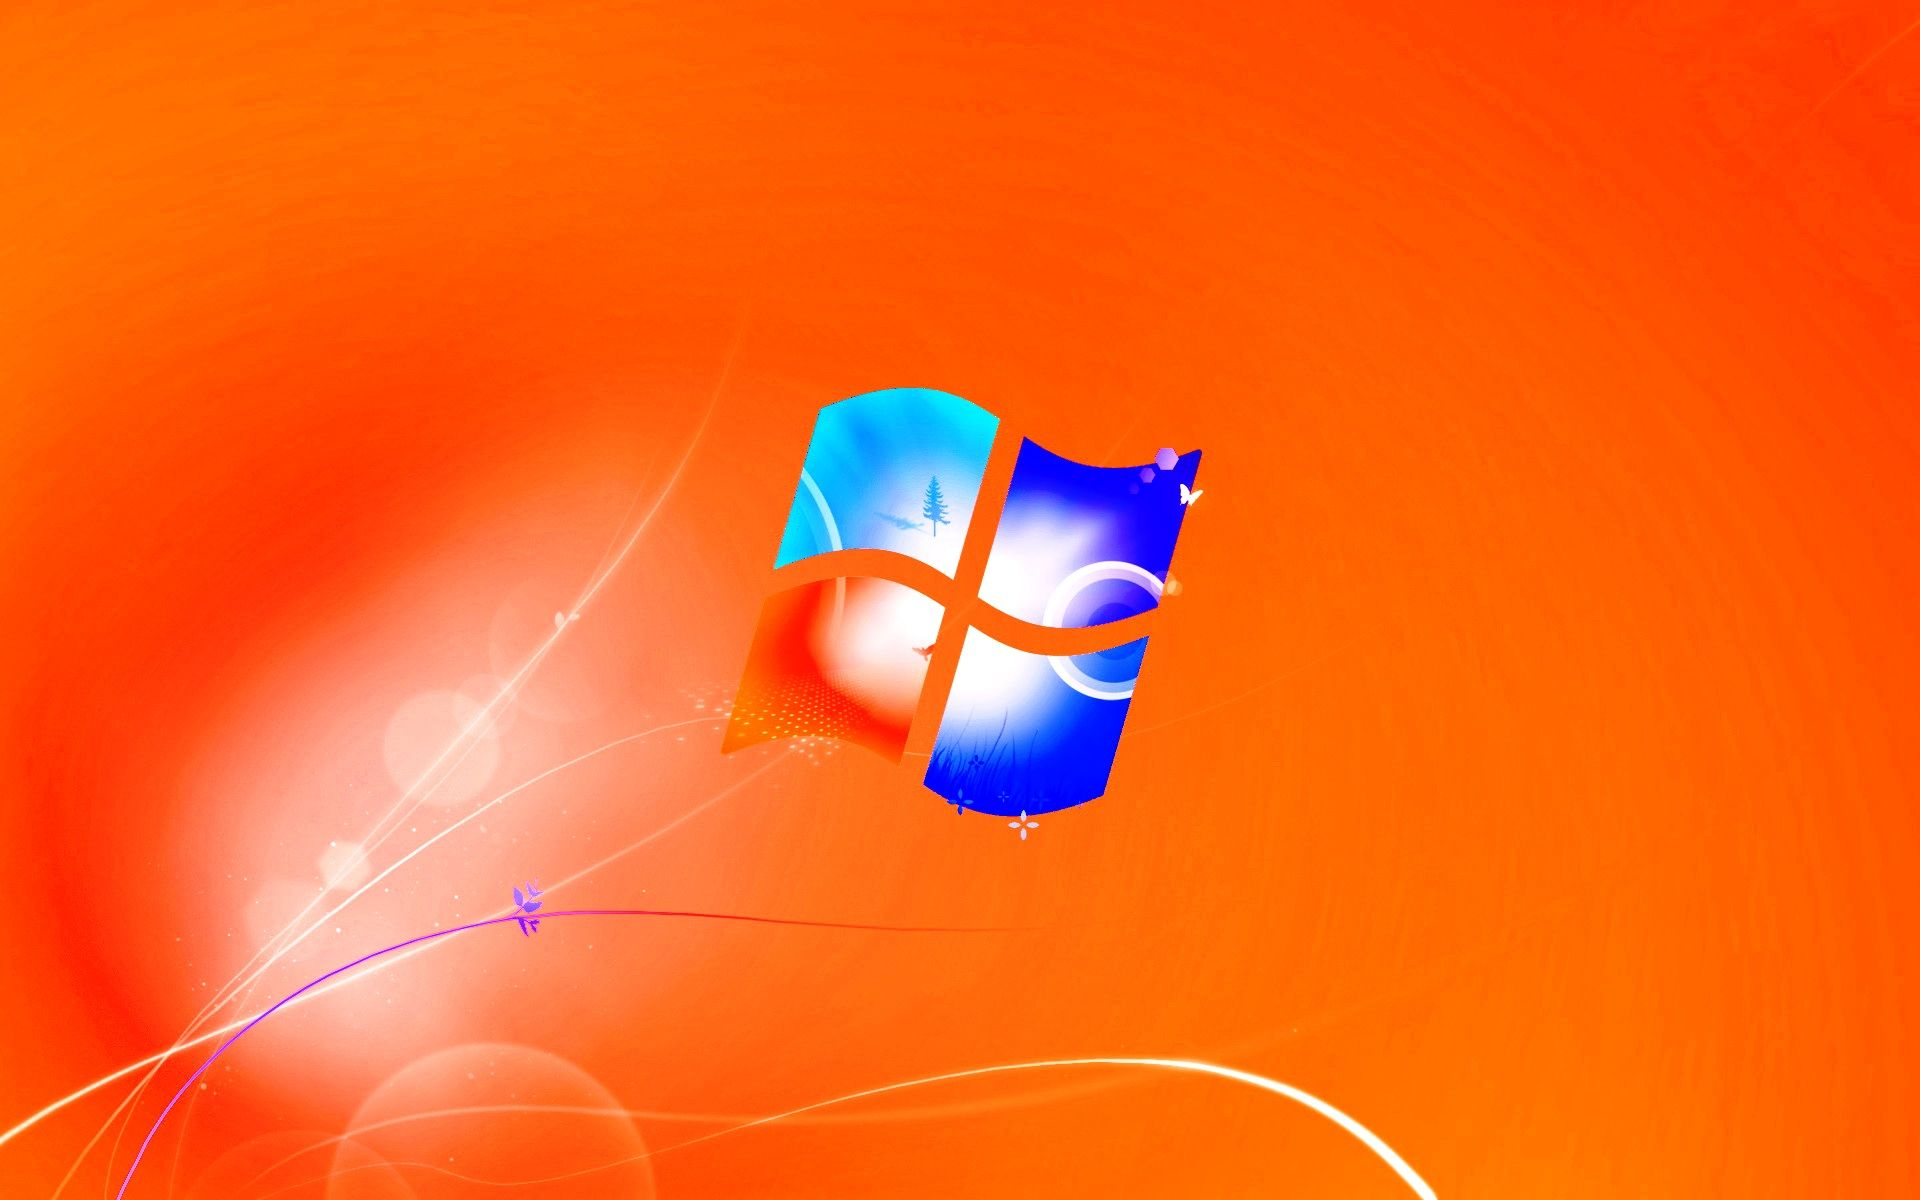 Download animated wallpaper windows 7 free full version - Car wallpaper for windows 7 ...